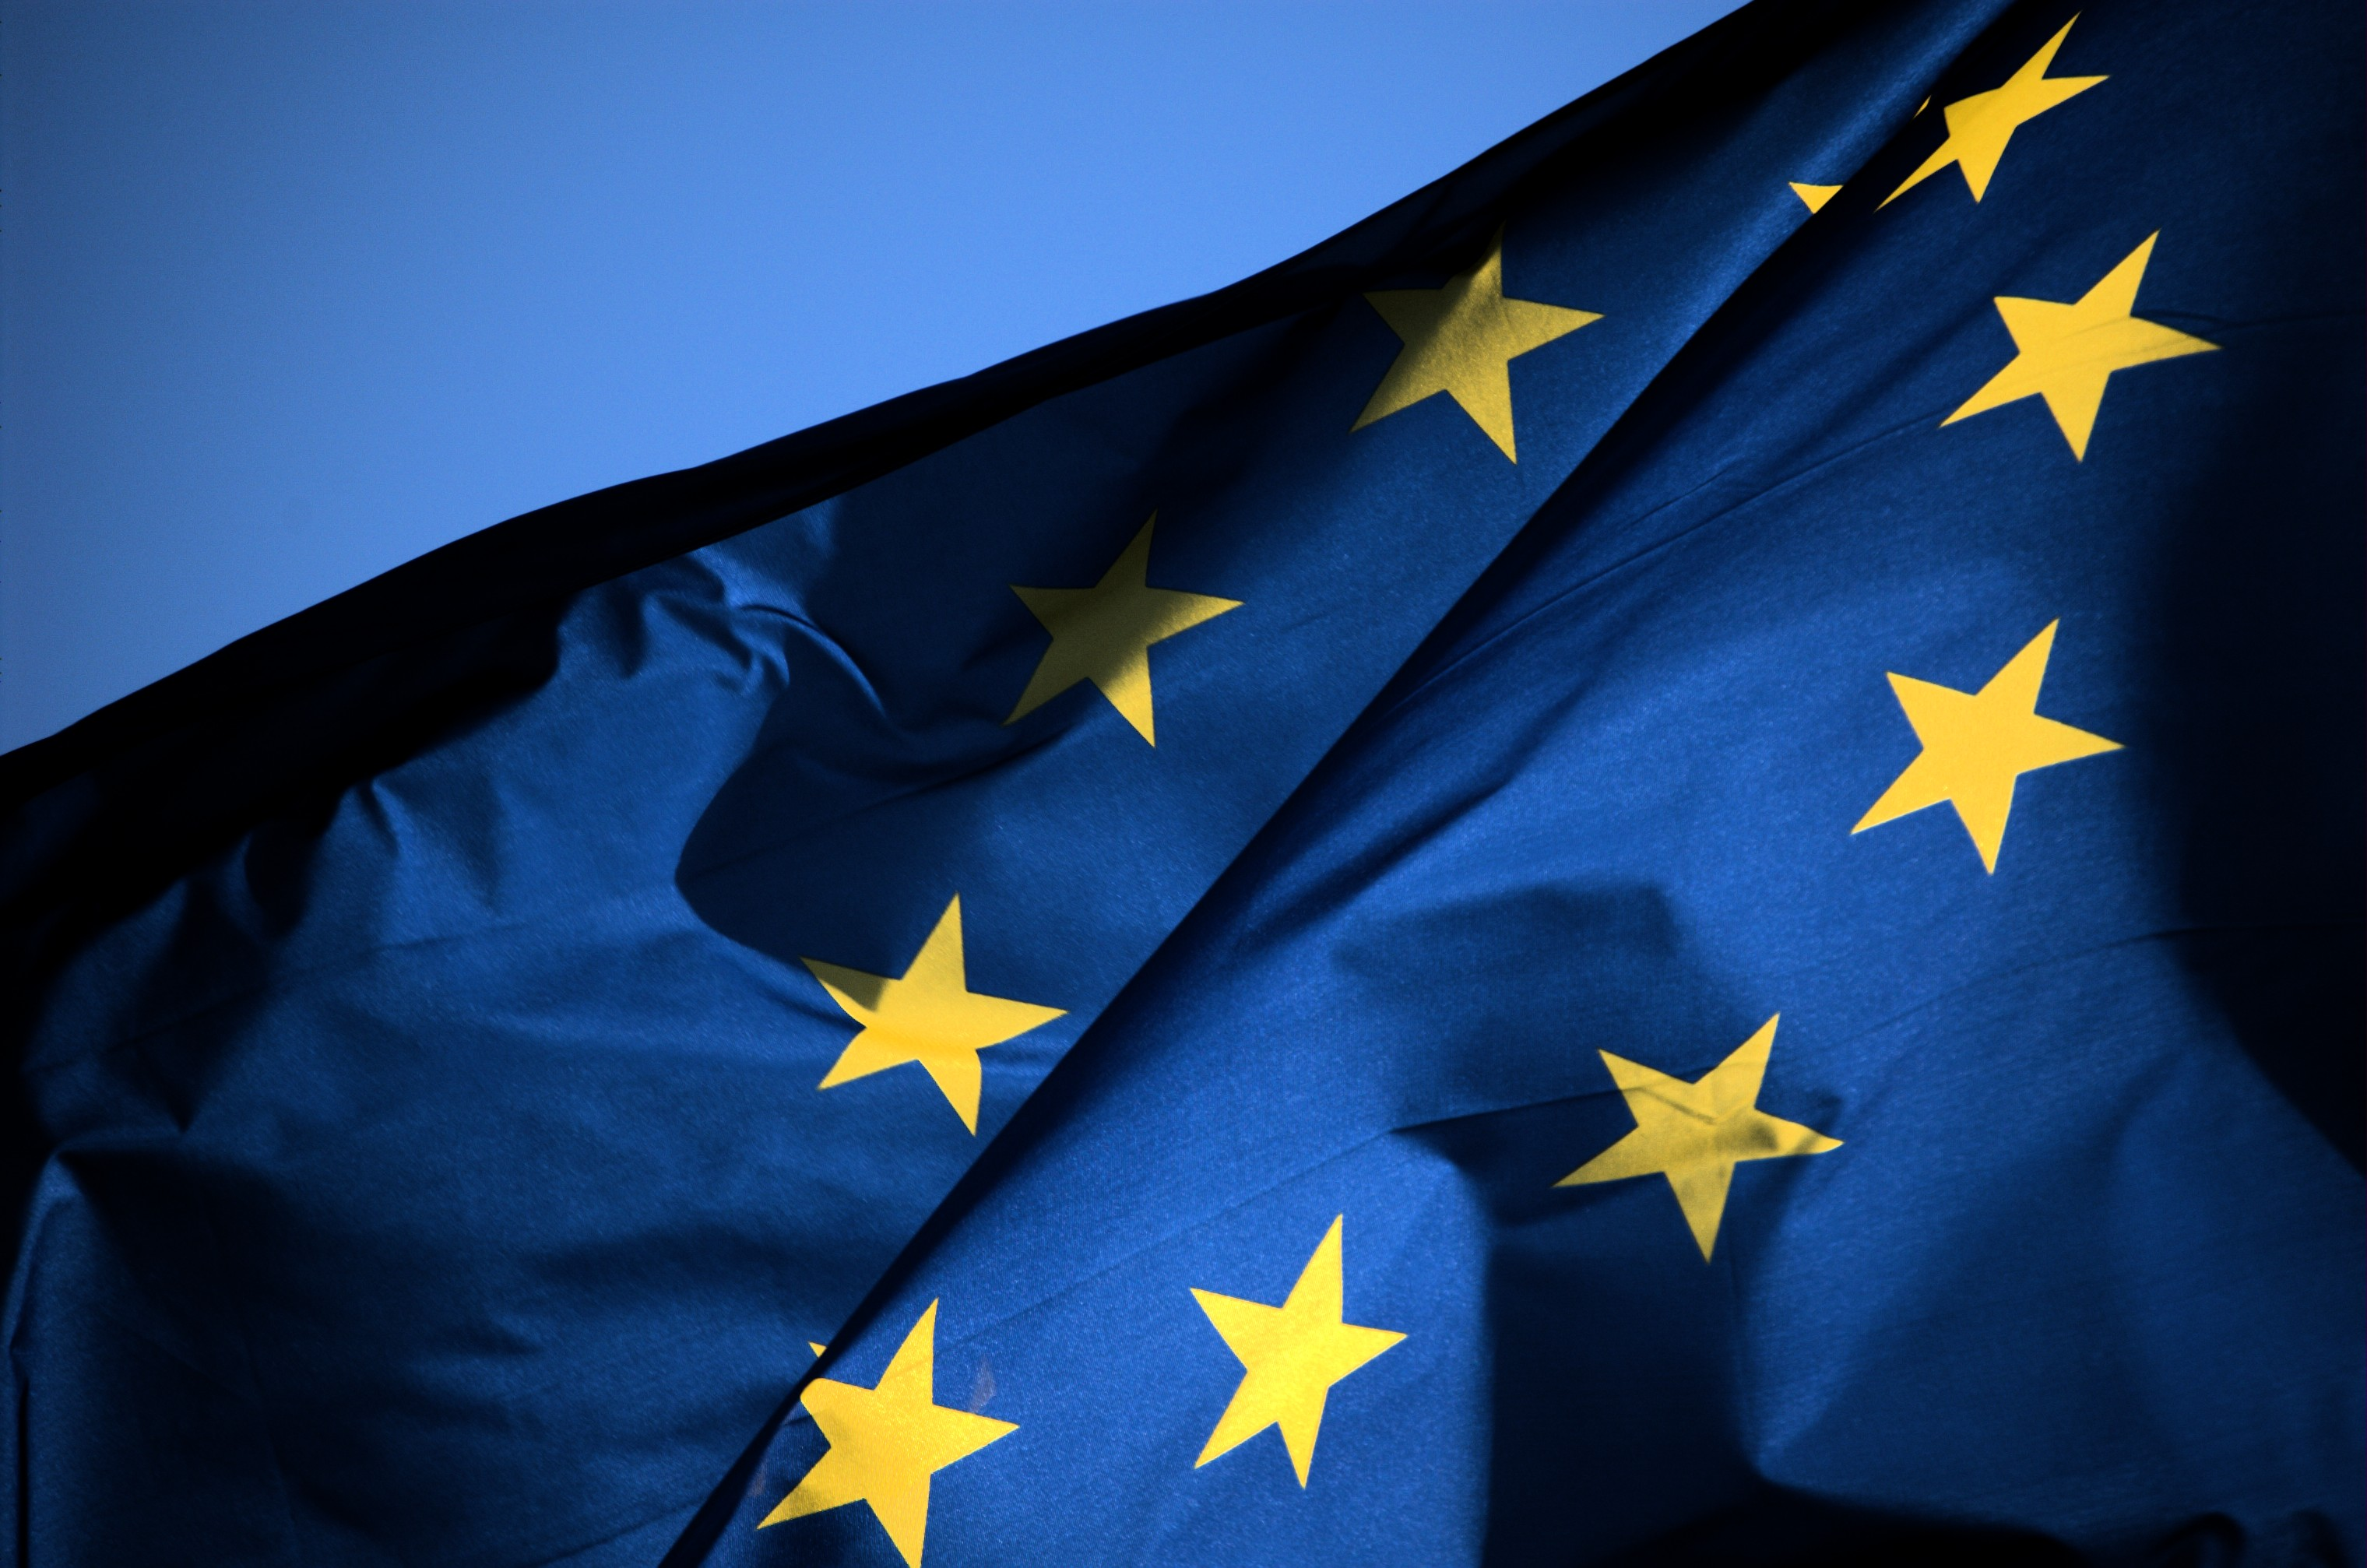 2013_Mar20_21_EU_Flag1